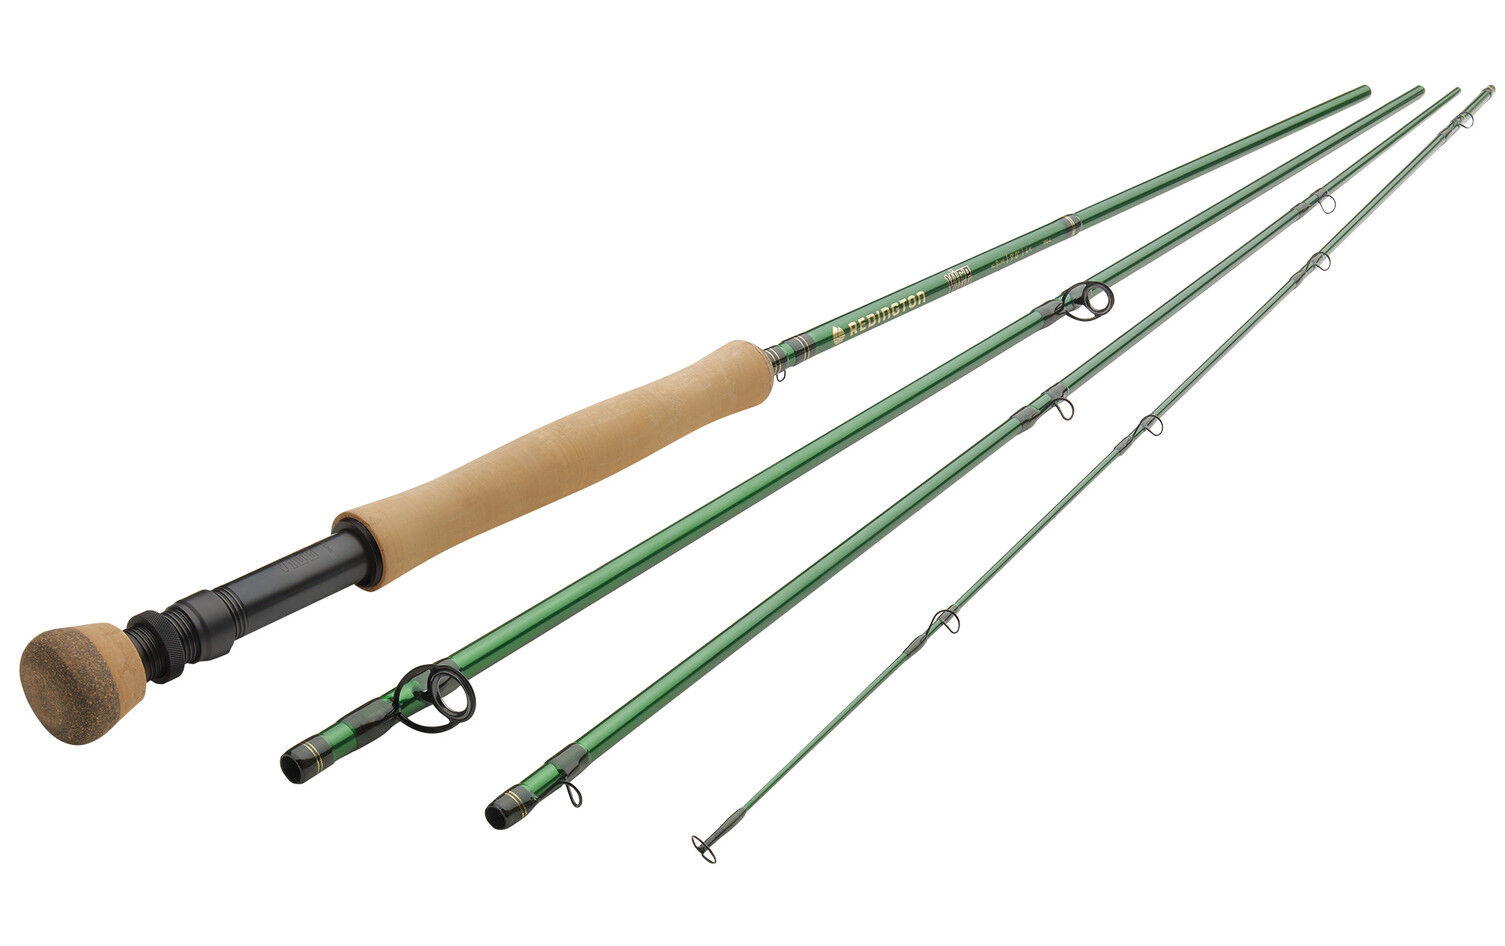 Redington Vice 8100-4 Fly Rod, 10', 8wt, 4pc - New